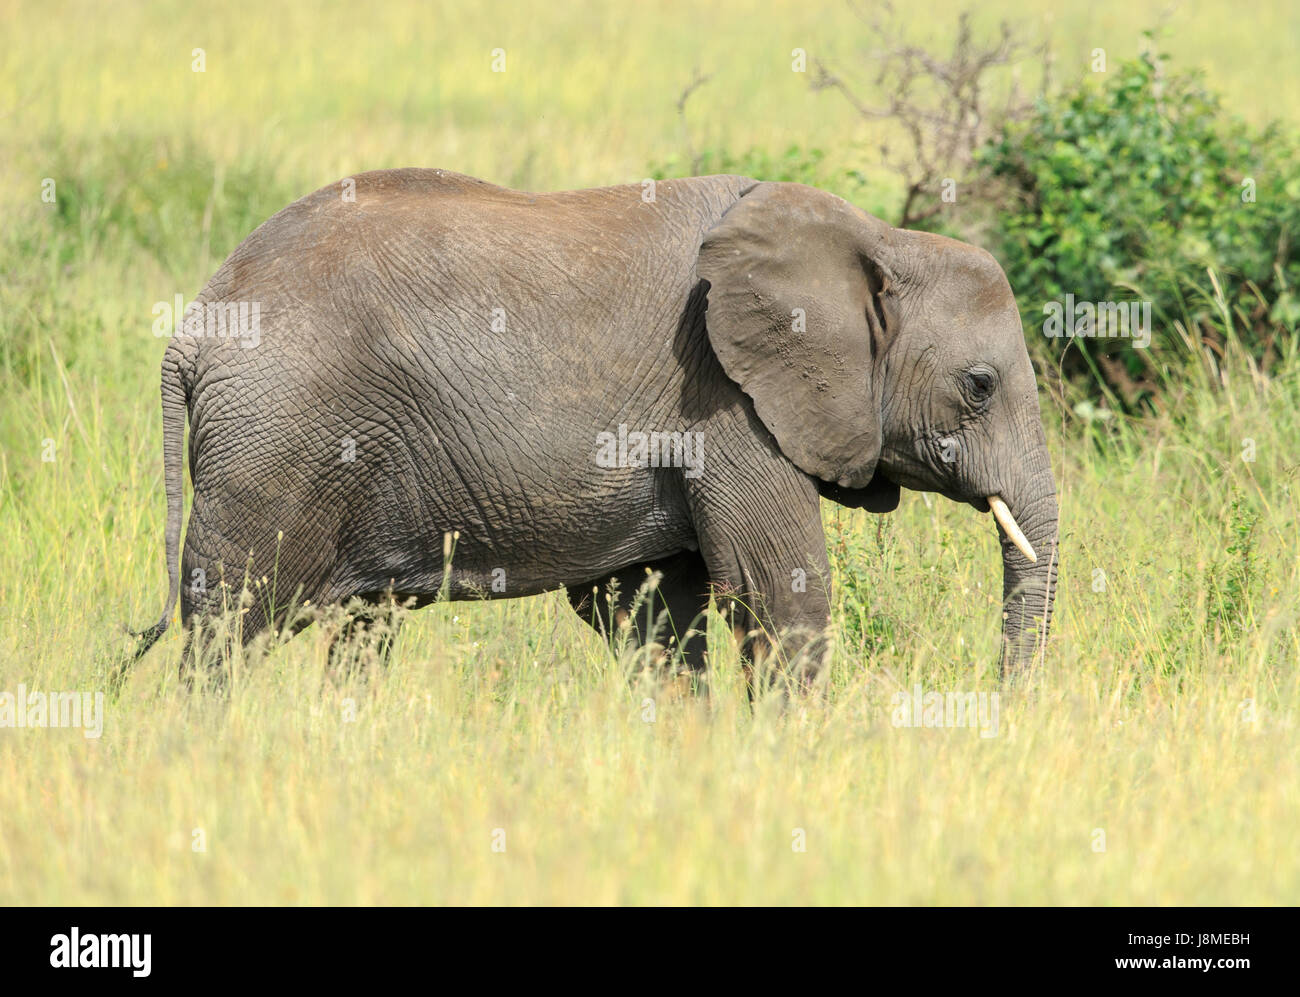 An African Elephant grazing in the tall grass - Stock Image